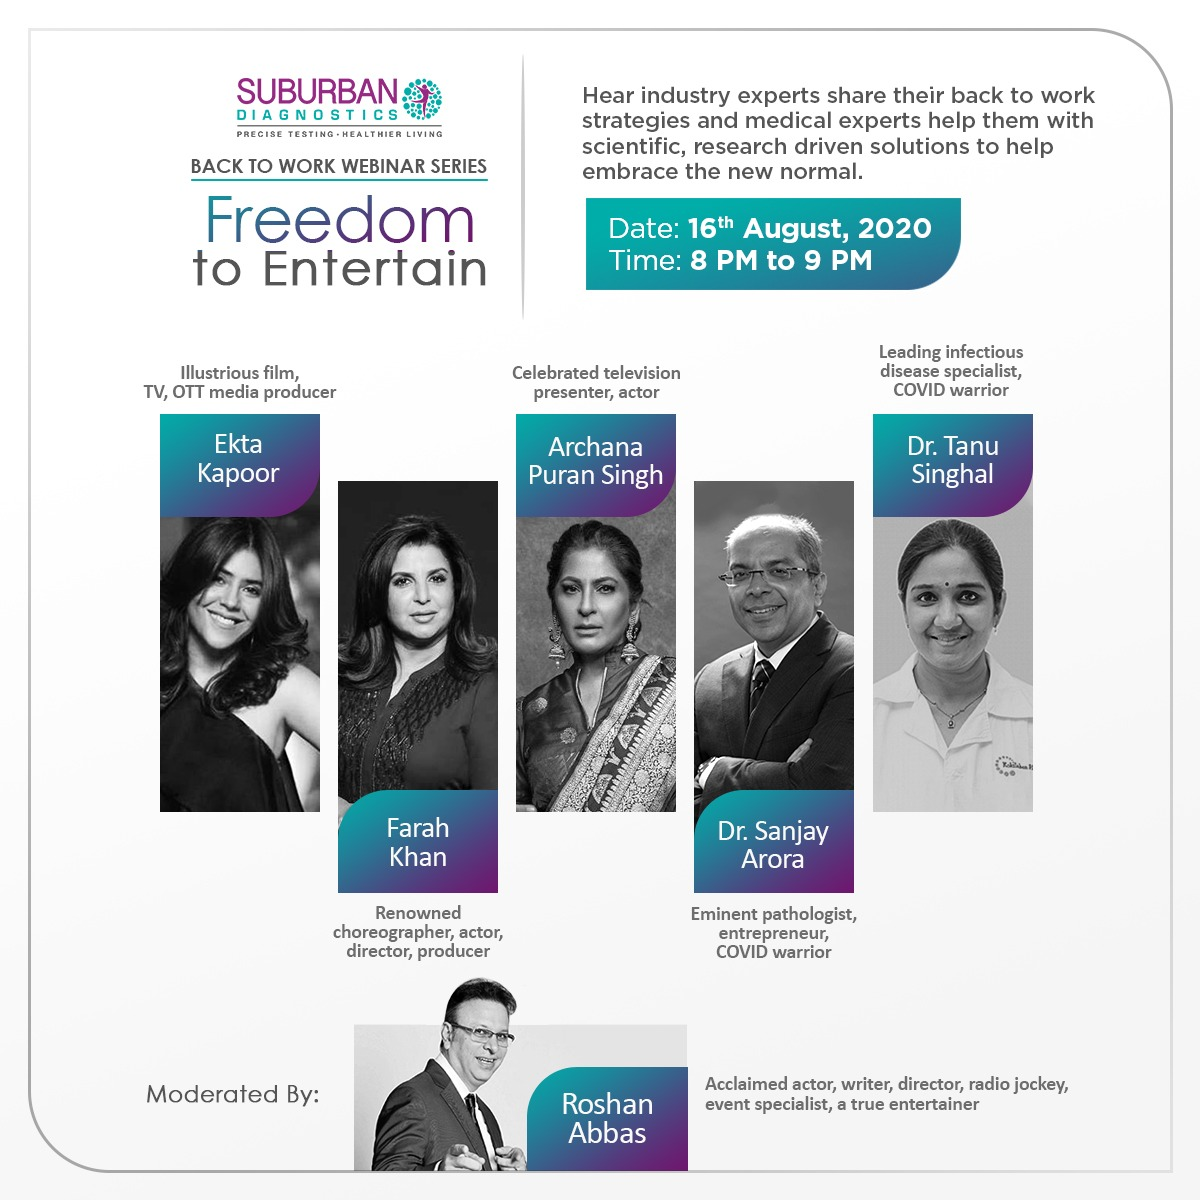 """Every industry has its own needs and challenges tackling COVID-19. Join our panel discussion on  """"Freedom to Entertain"""" as we address the specific challenges faced by the entertainment industry. Register here:      Register now:"""